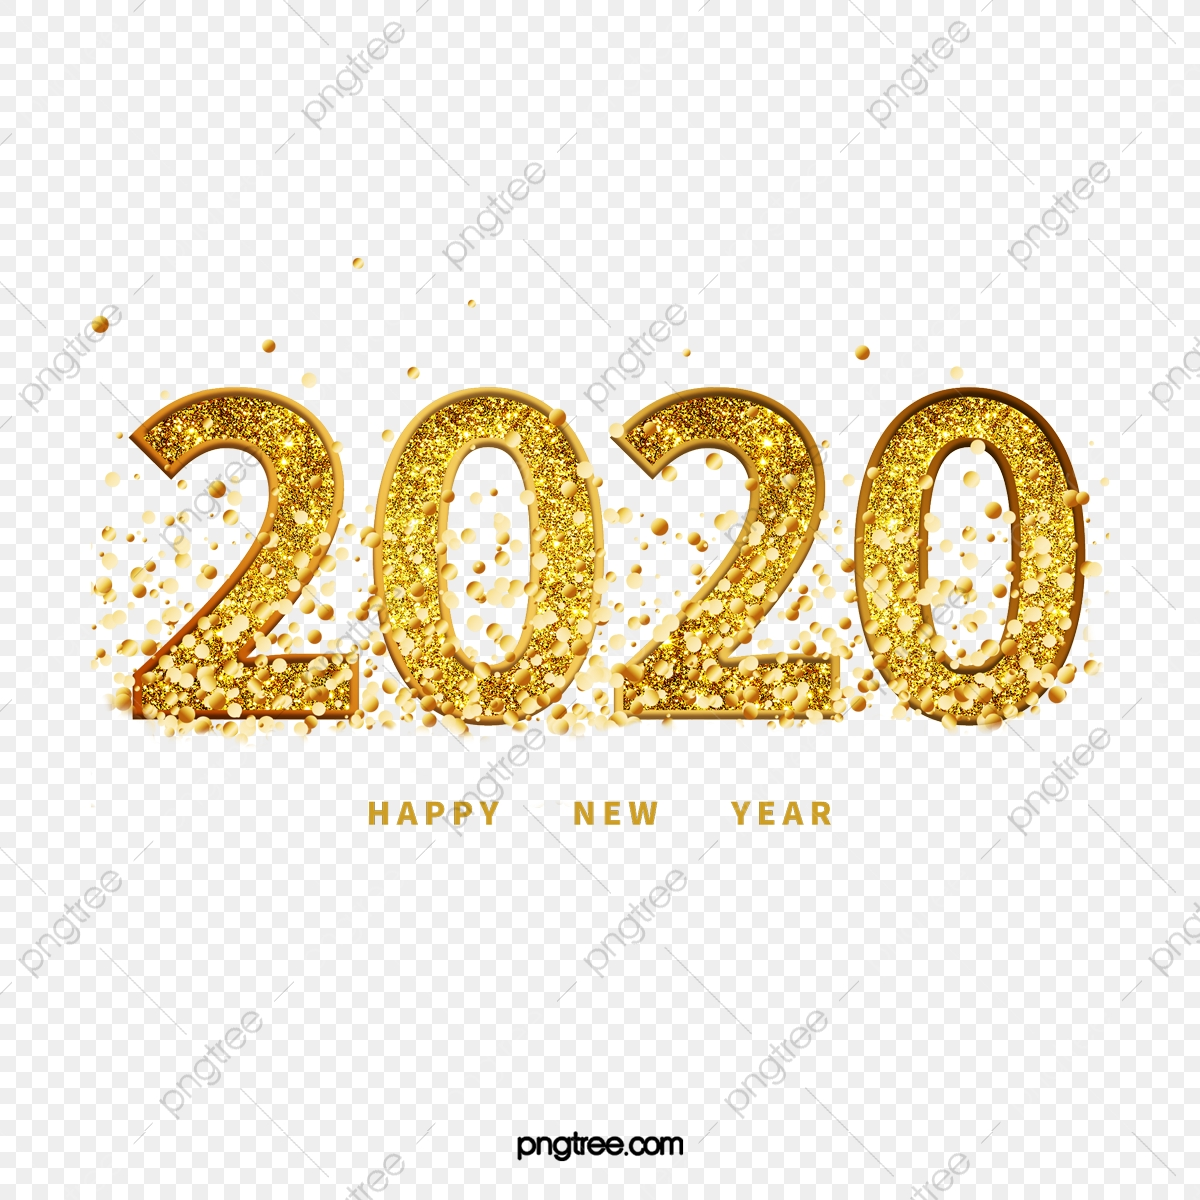 new year png vector psd and clipart with transparent background for free download pngtree https pngtree com freepng luxury creativity 2020 gold font new year 5252688 html